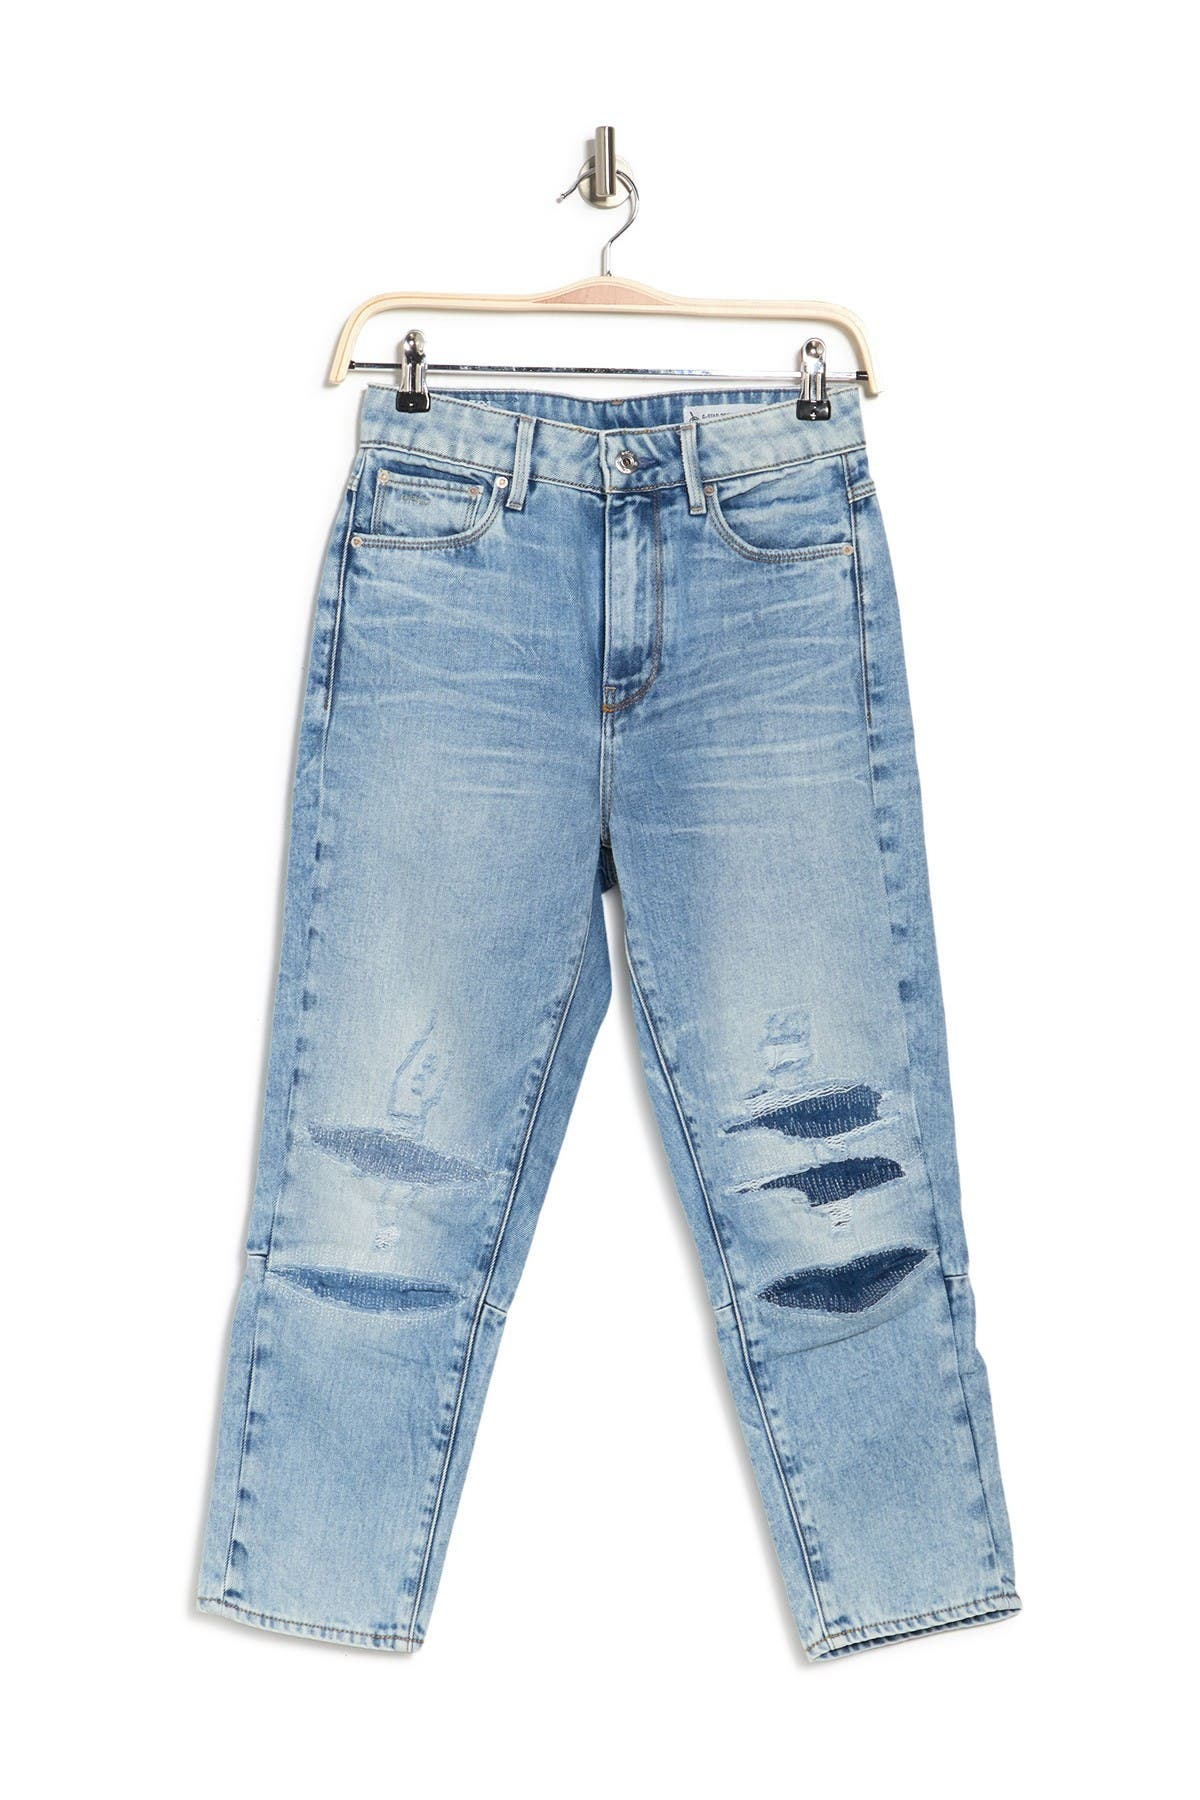 Image of G-STAR RAW Ultra High Rise Straight Leg Distressed Jeans